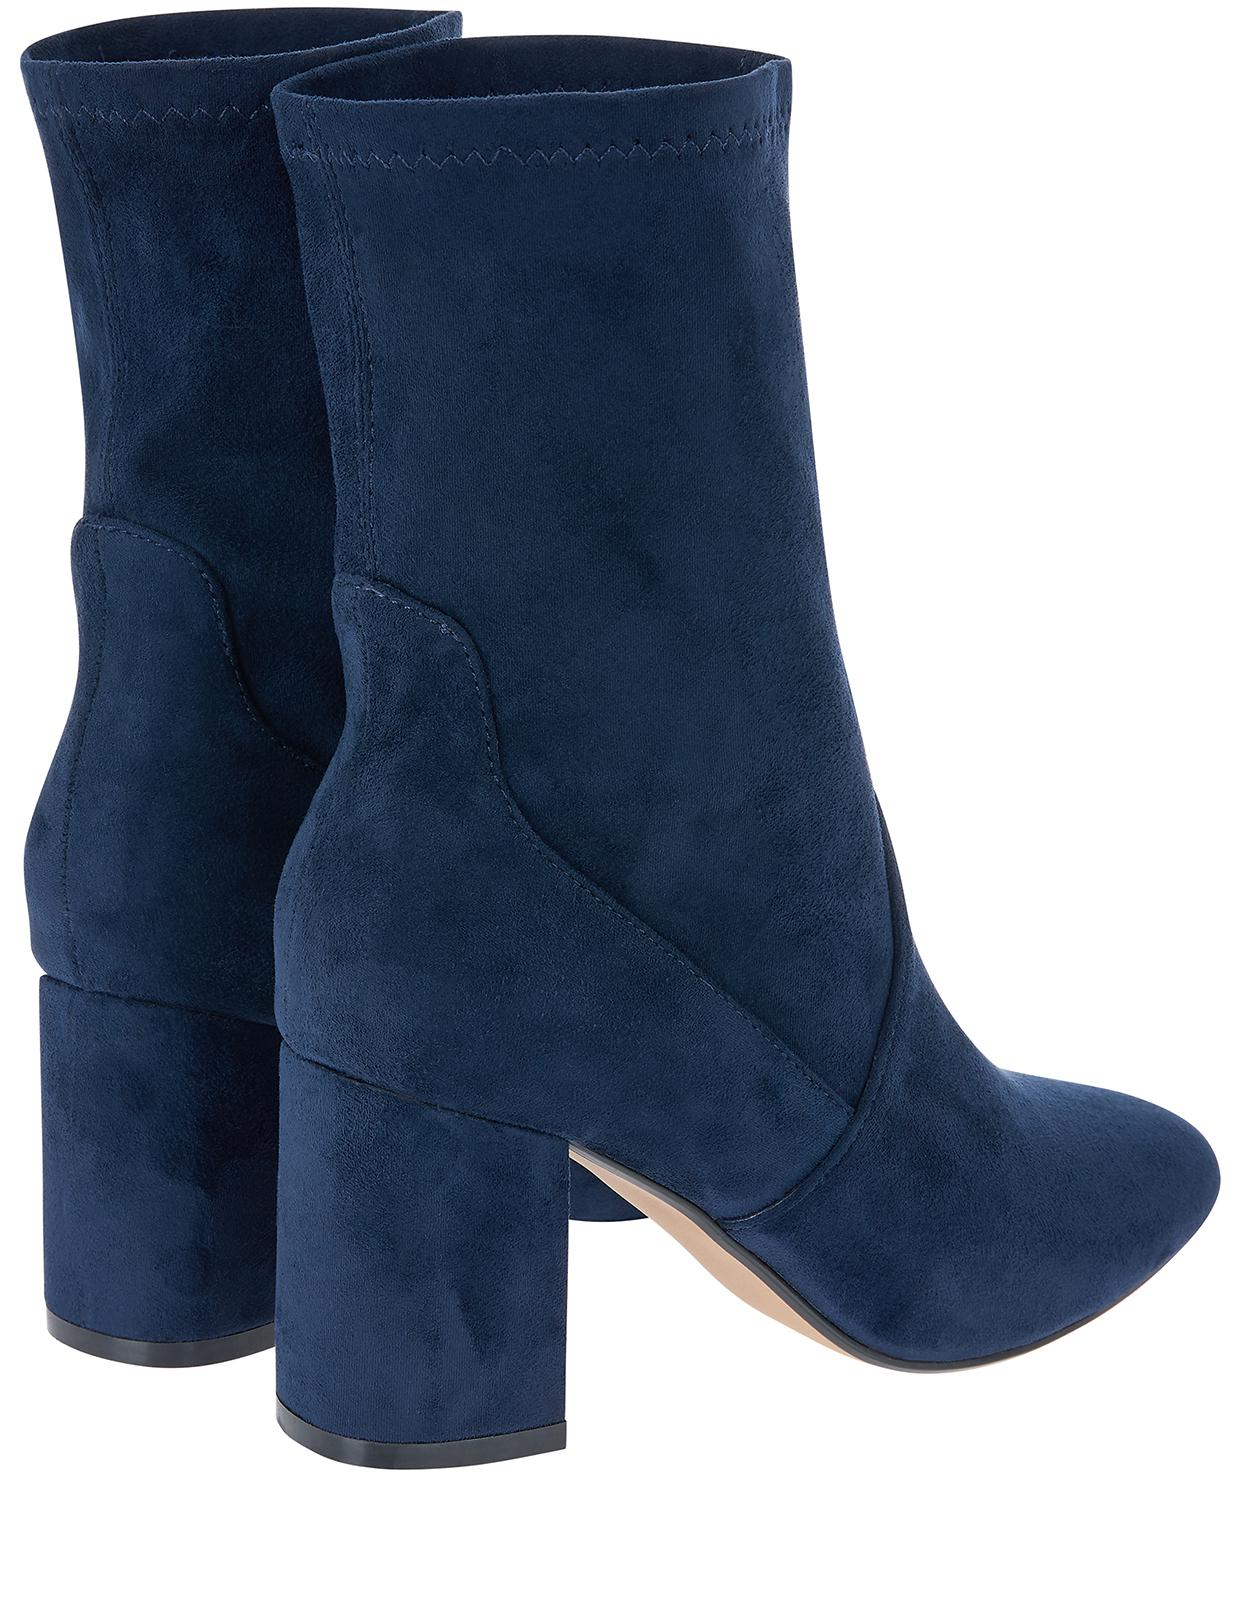 Monsoon Synthetic Samantha Sock Boots in Navy (Blue)